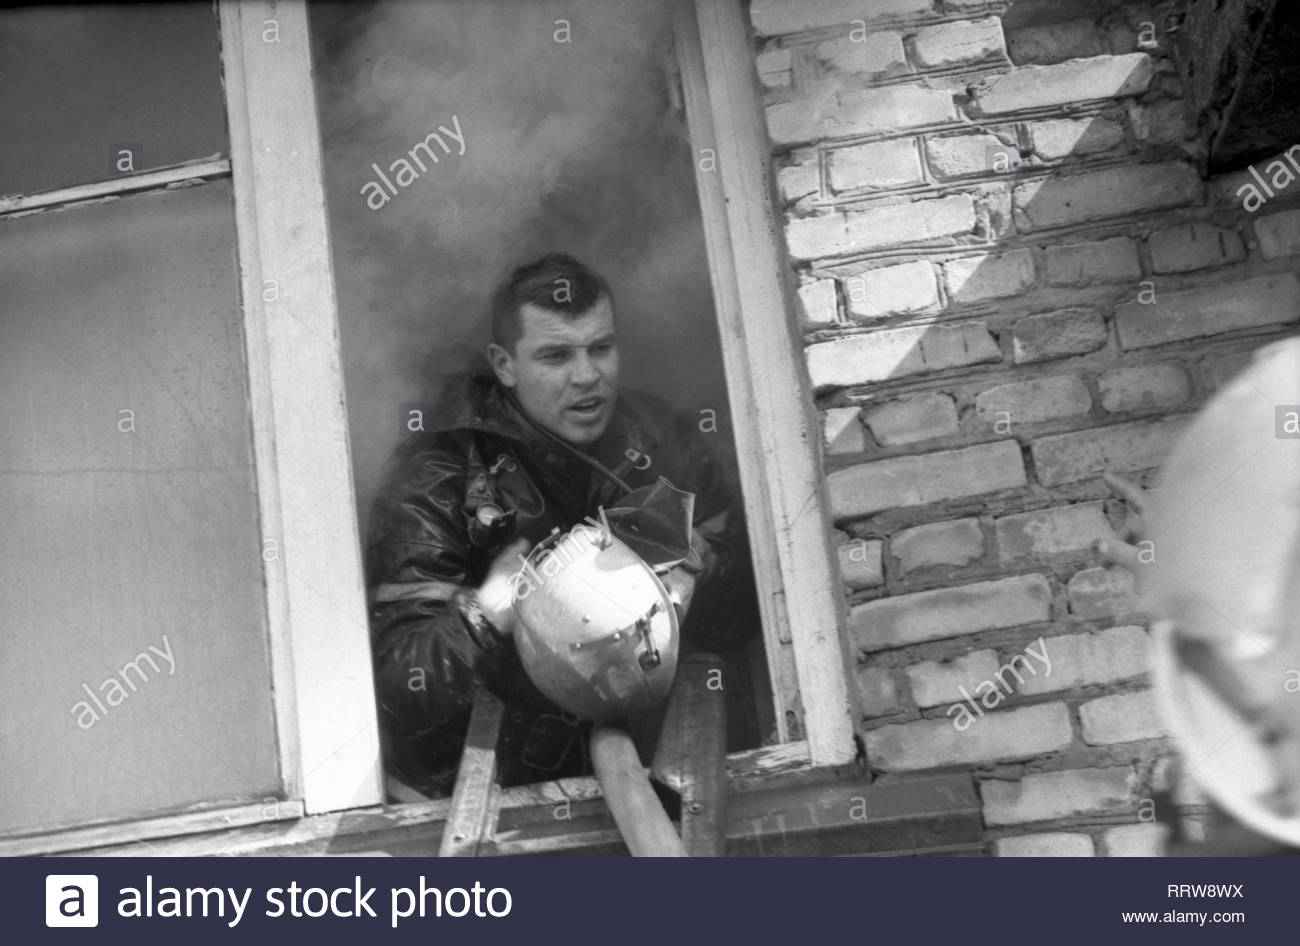 It is fire in the apartment. Firefighter in protective clothing is in the apartment where the fire occurred. The man looks out from open window. He is holding a helmet. Behind him is a dense shroud of smoke. The rescuer receives instructions of the management which is on the street. He saved people... - Stock Image